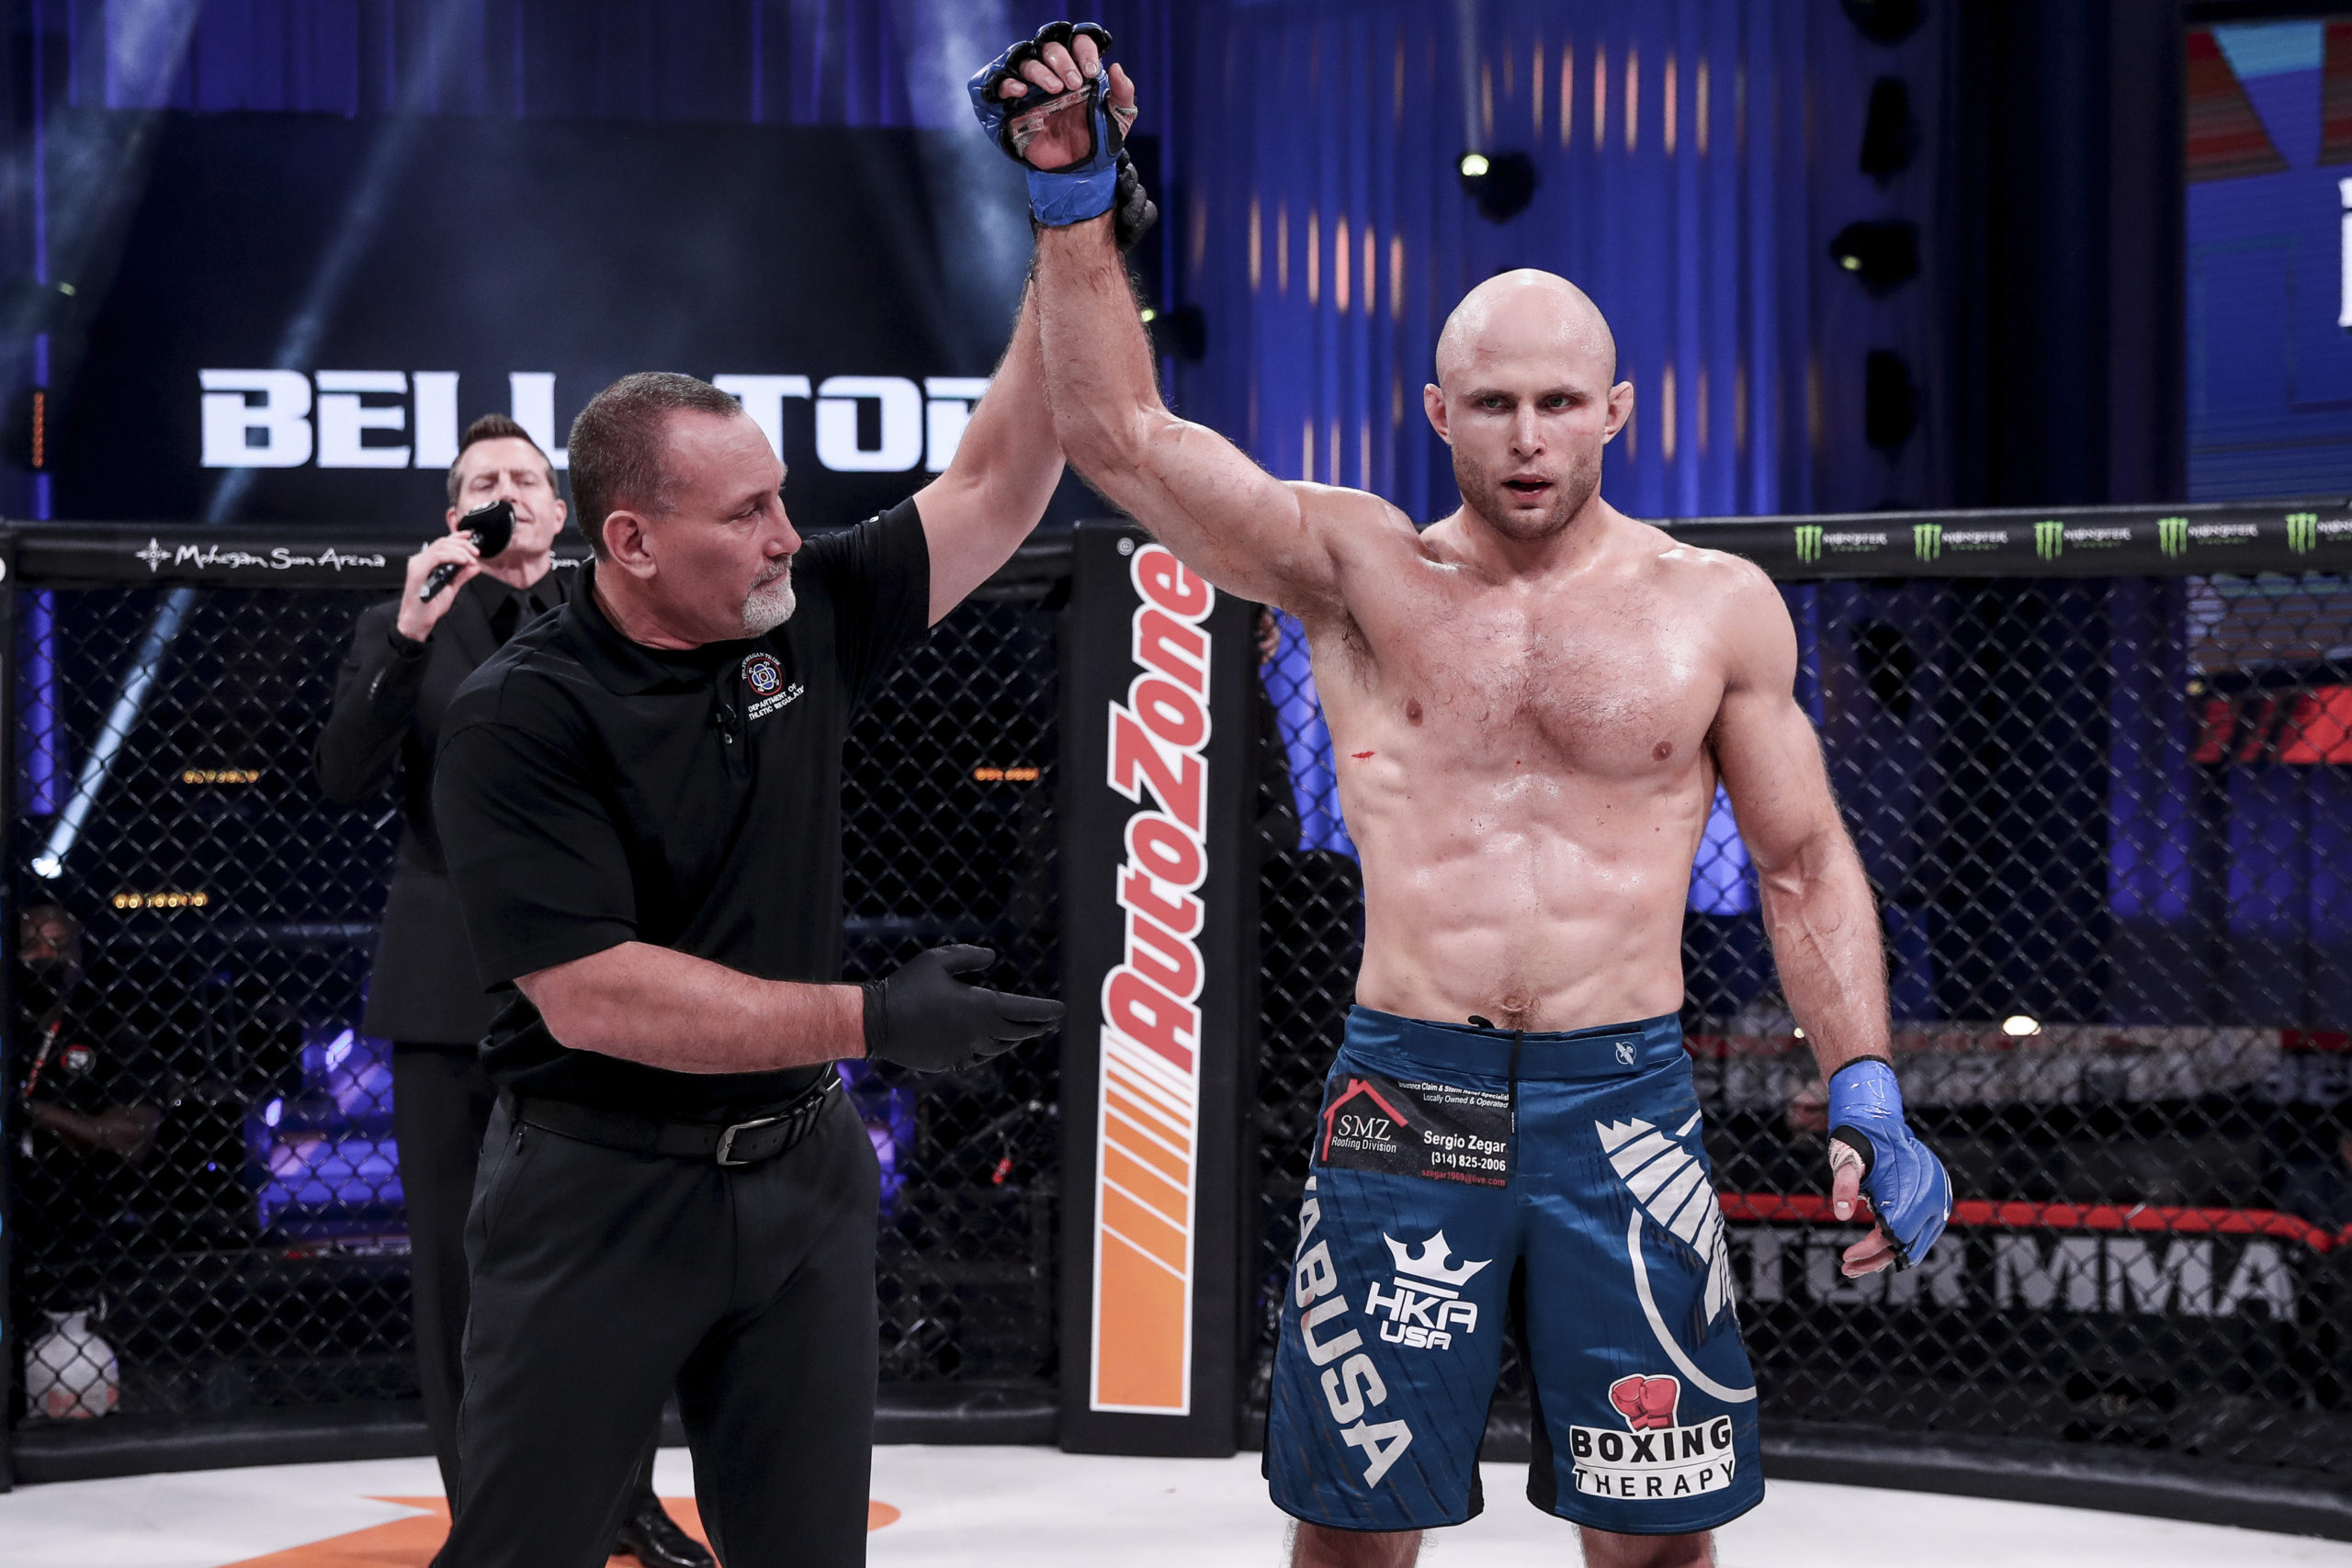 Southampton High School graduate Julius Anglickas defeated Alex Polizzi by unanimous decision on November 5, for his second win in the Bellator division of MMA.   LUCAS NOONAN